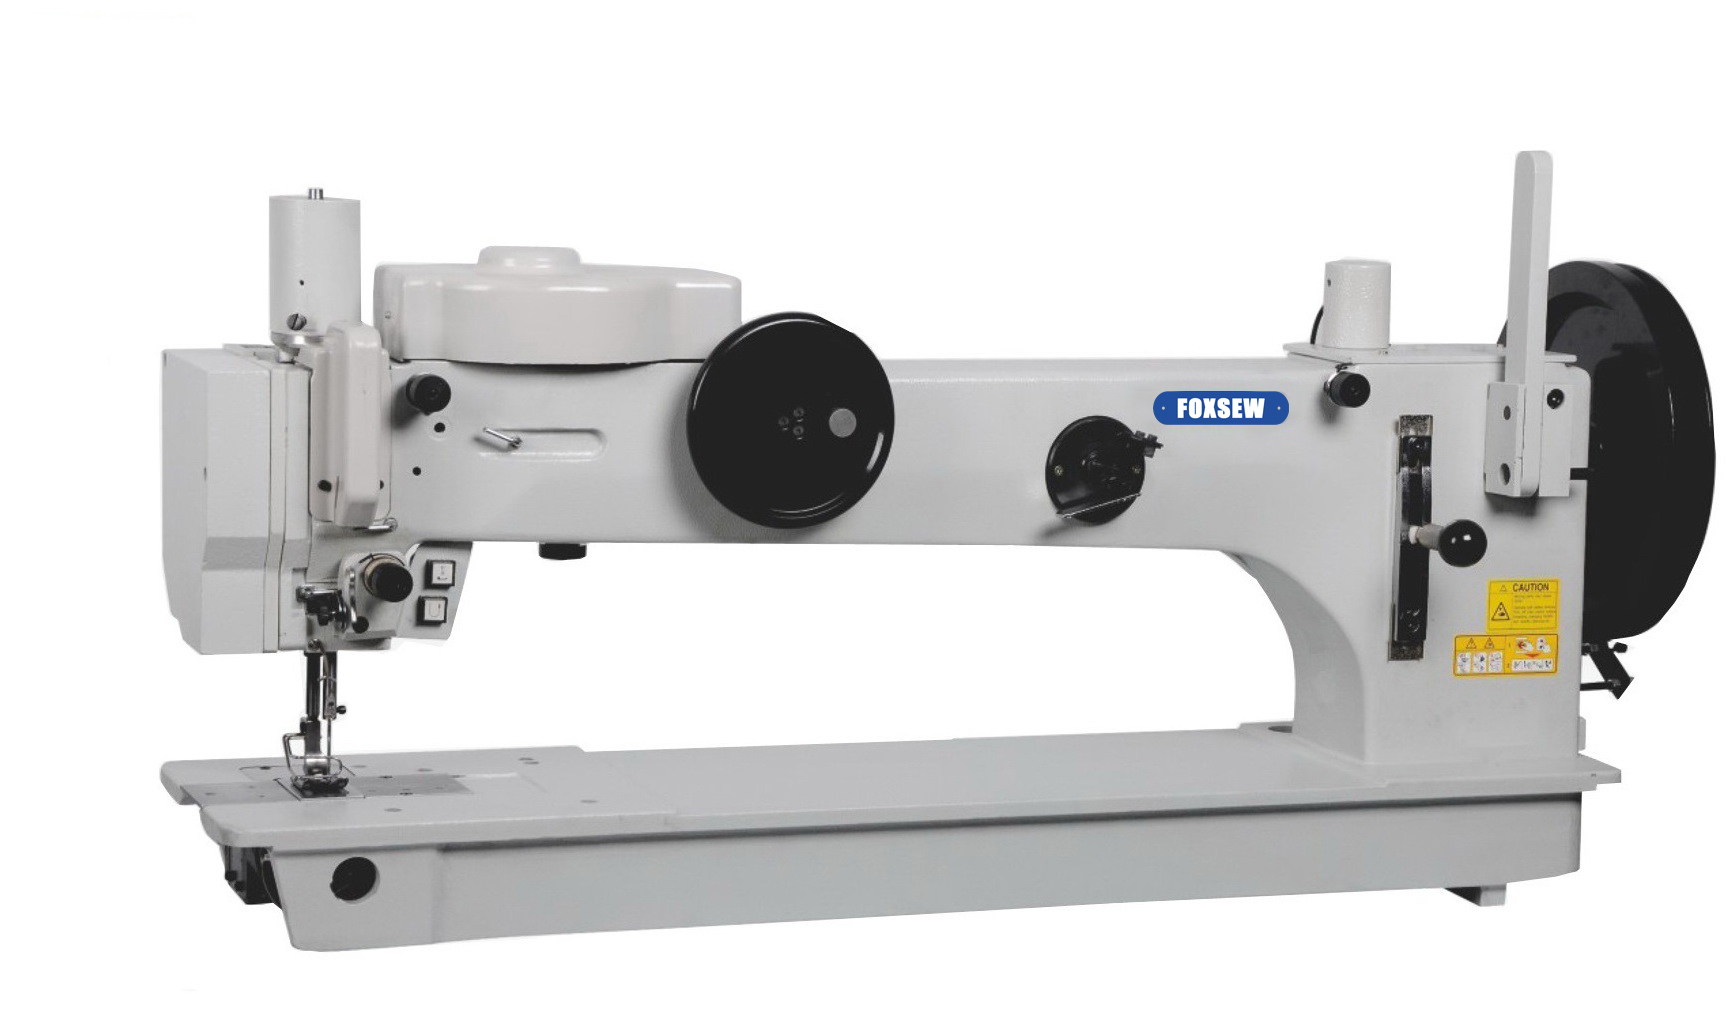 KD-366-76-12HH Extra Long Arm Heavy Duty Zgzag Sewing Machine for Sails Makers and Repairs